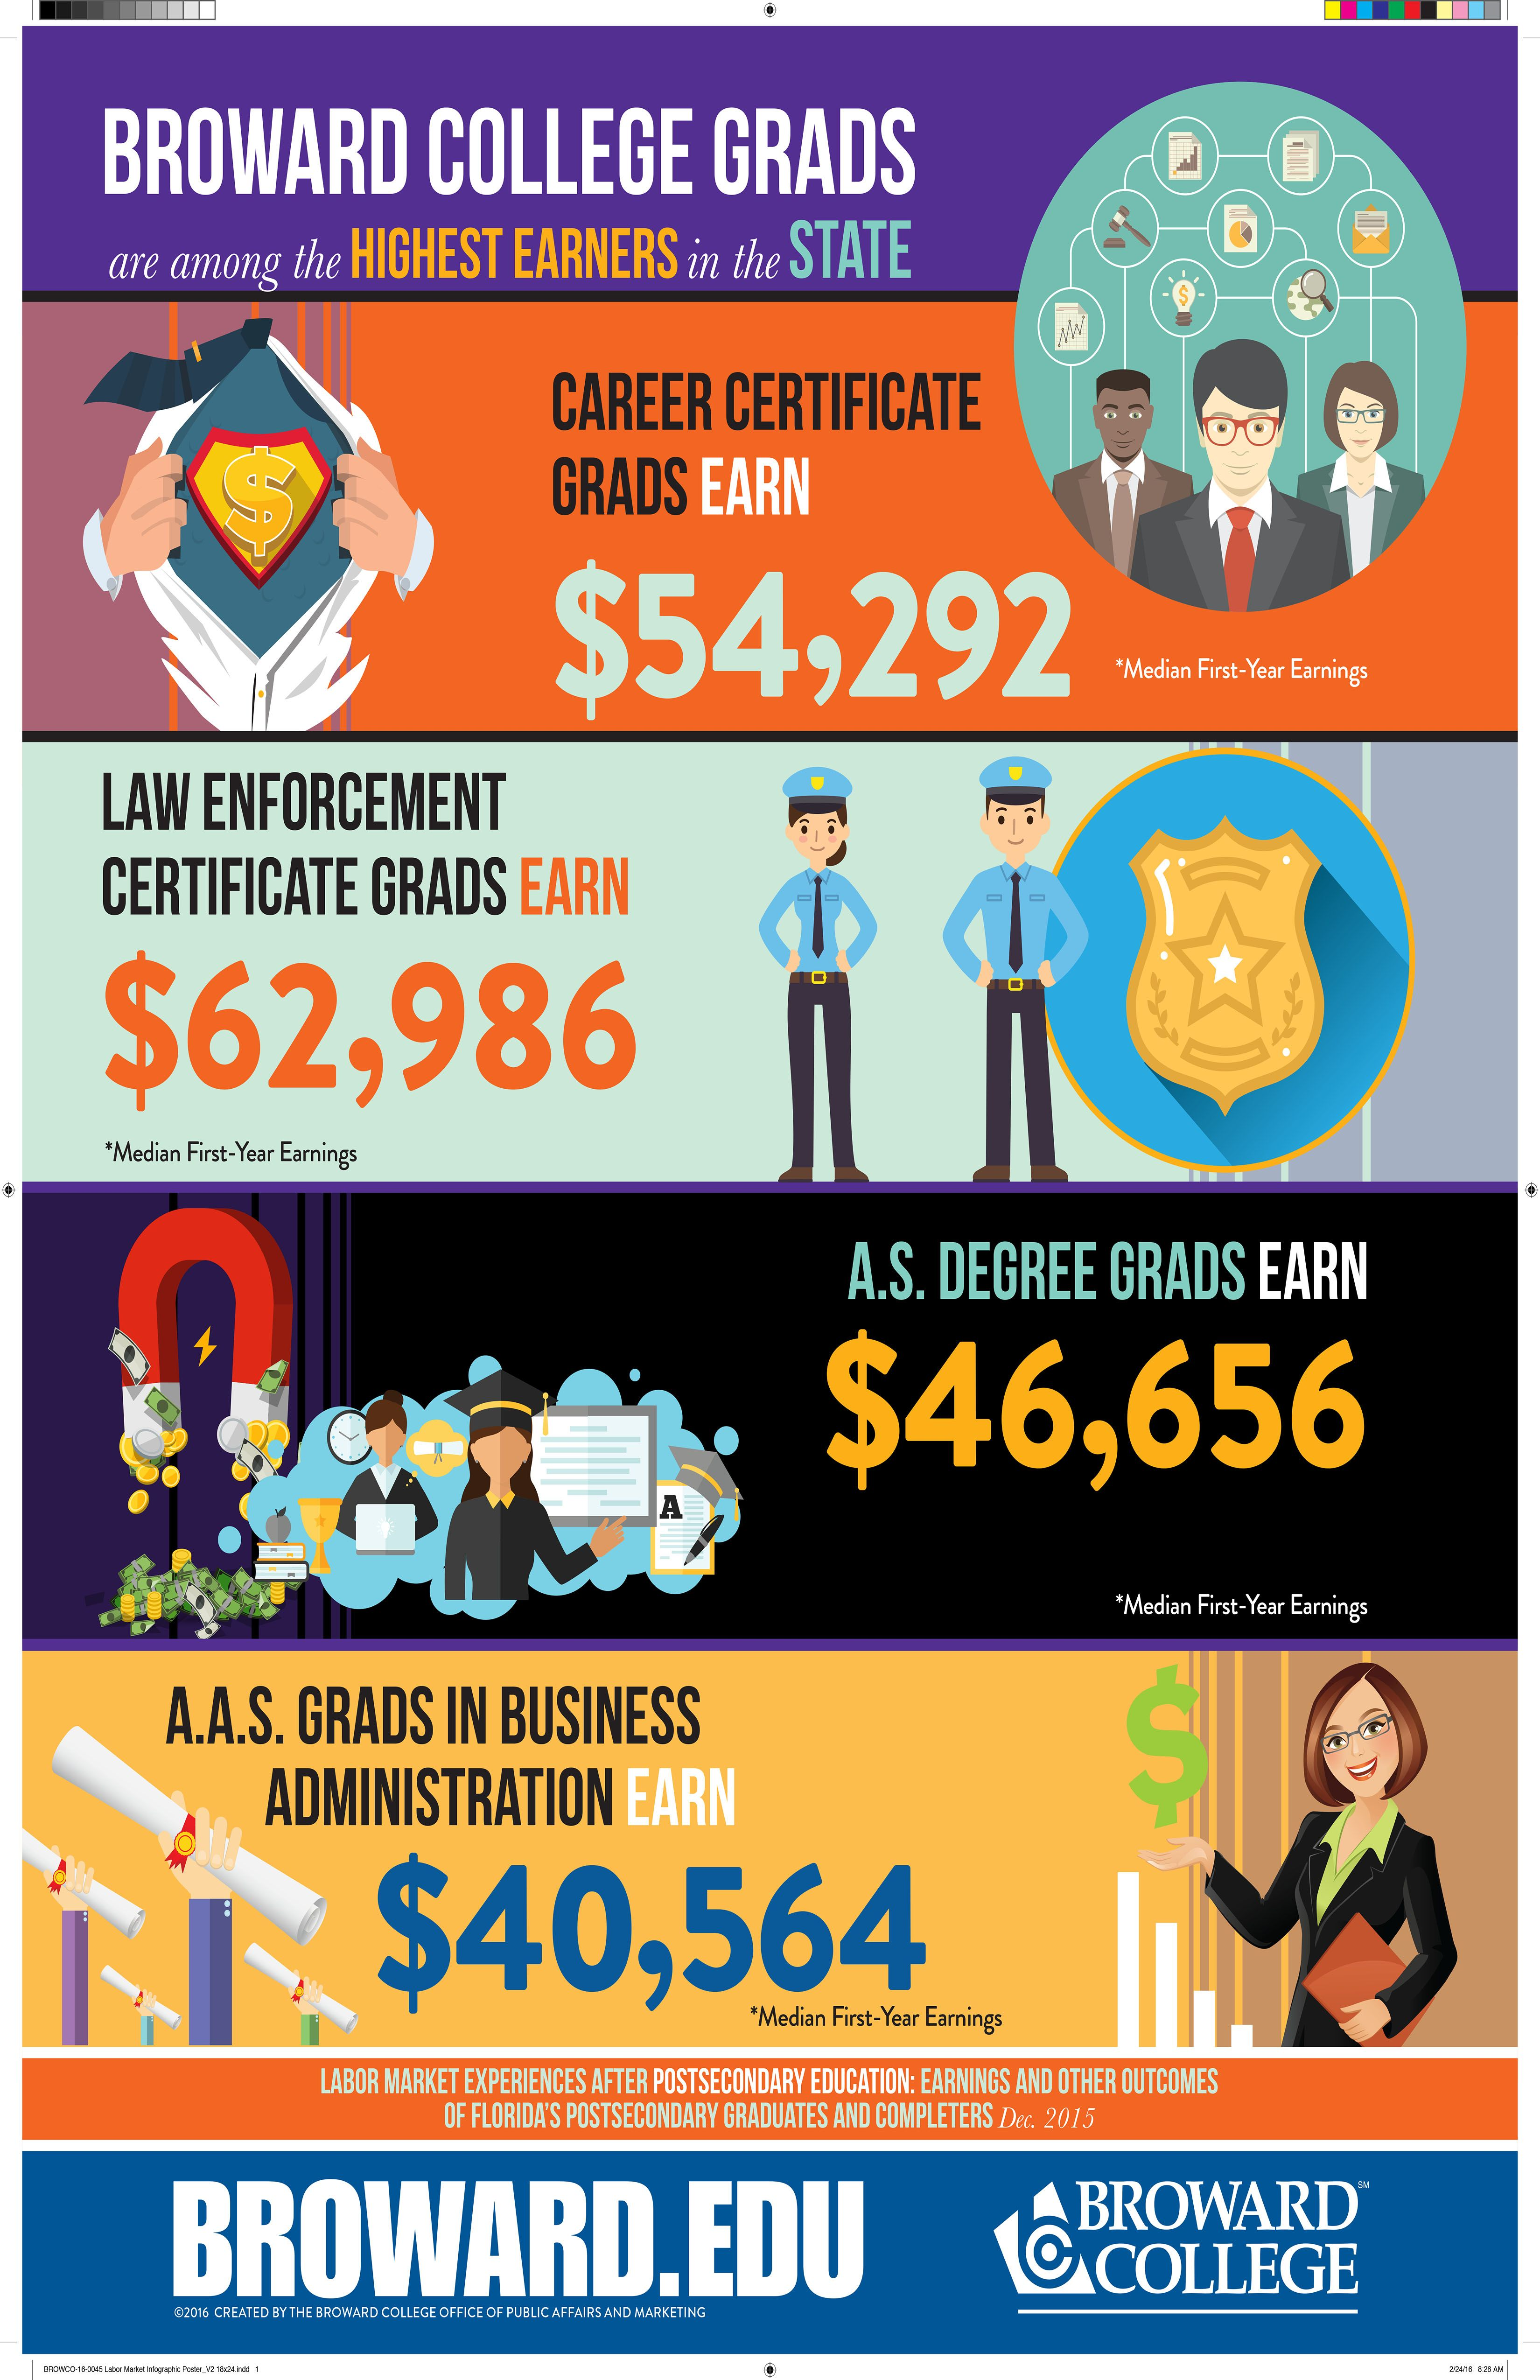 Broward college grads are the highest earners in